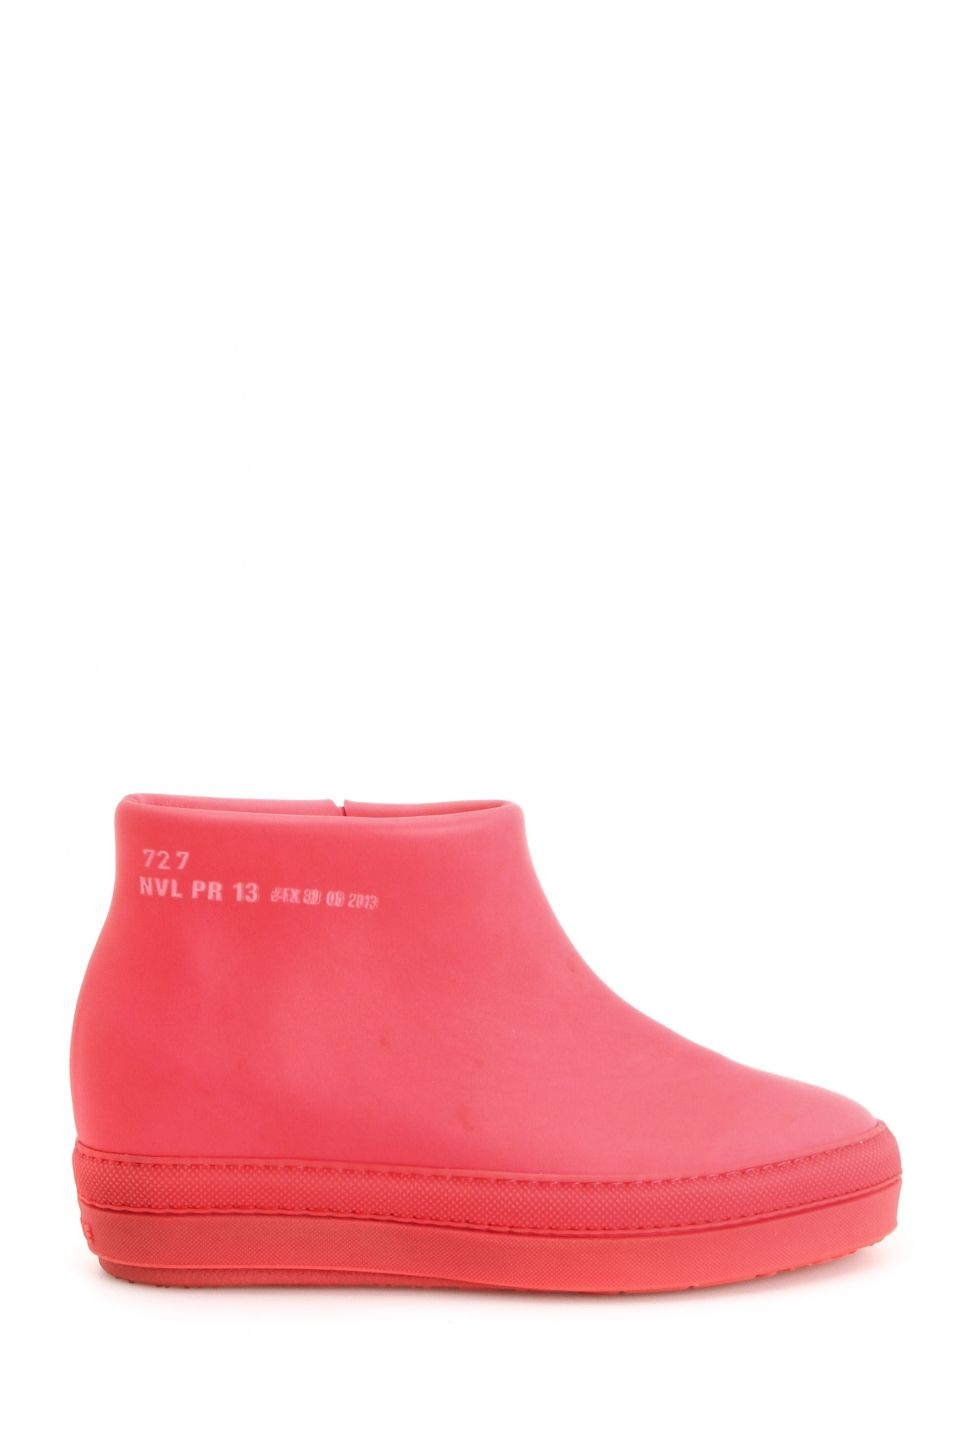 Ruco Line // Pure leather shoes Available on www.wiseboutique.com